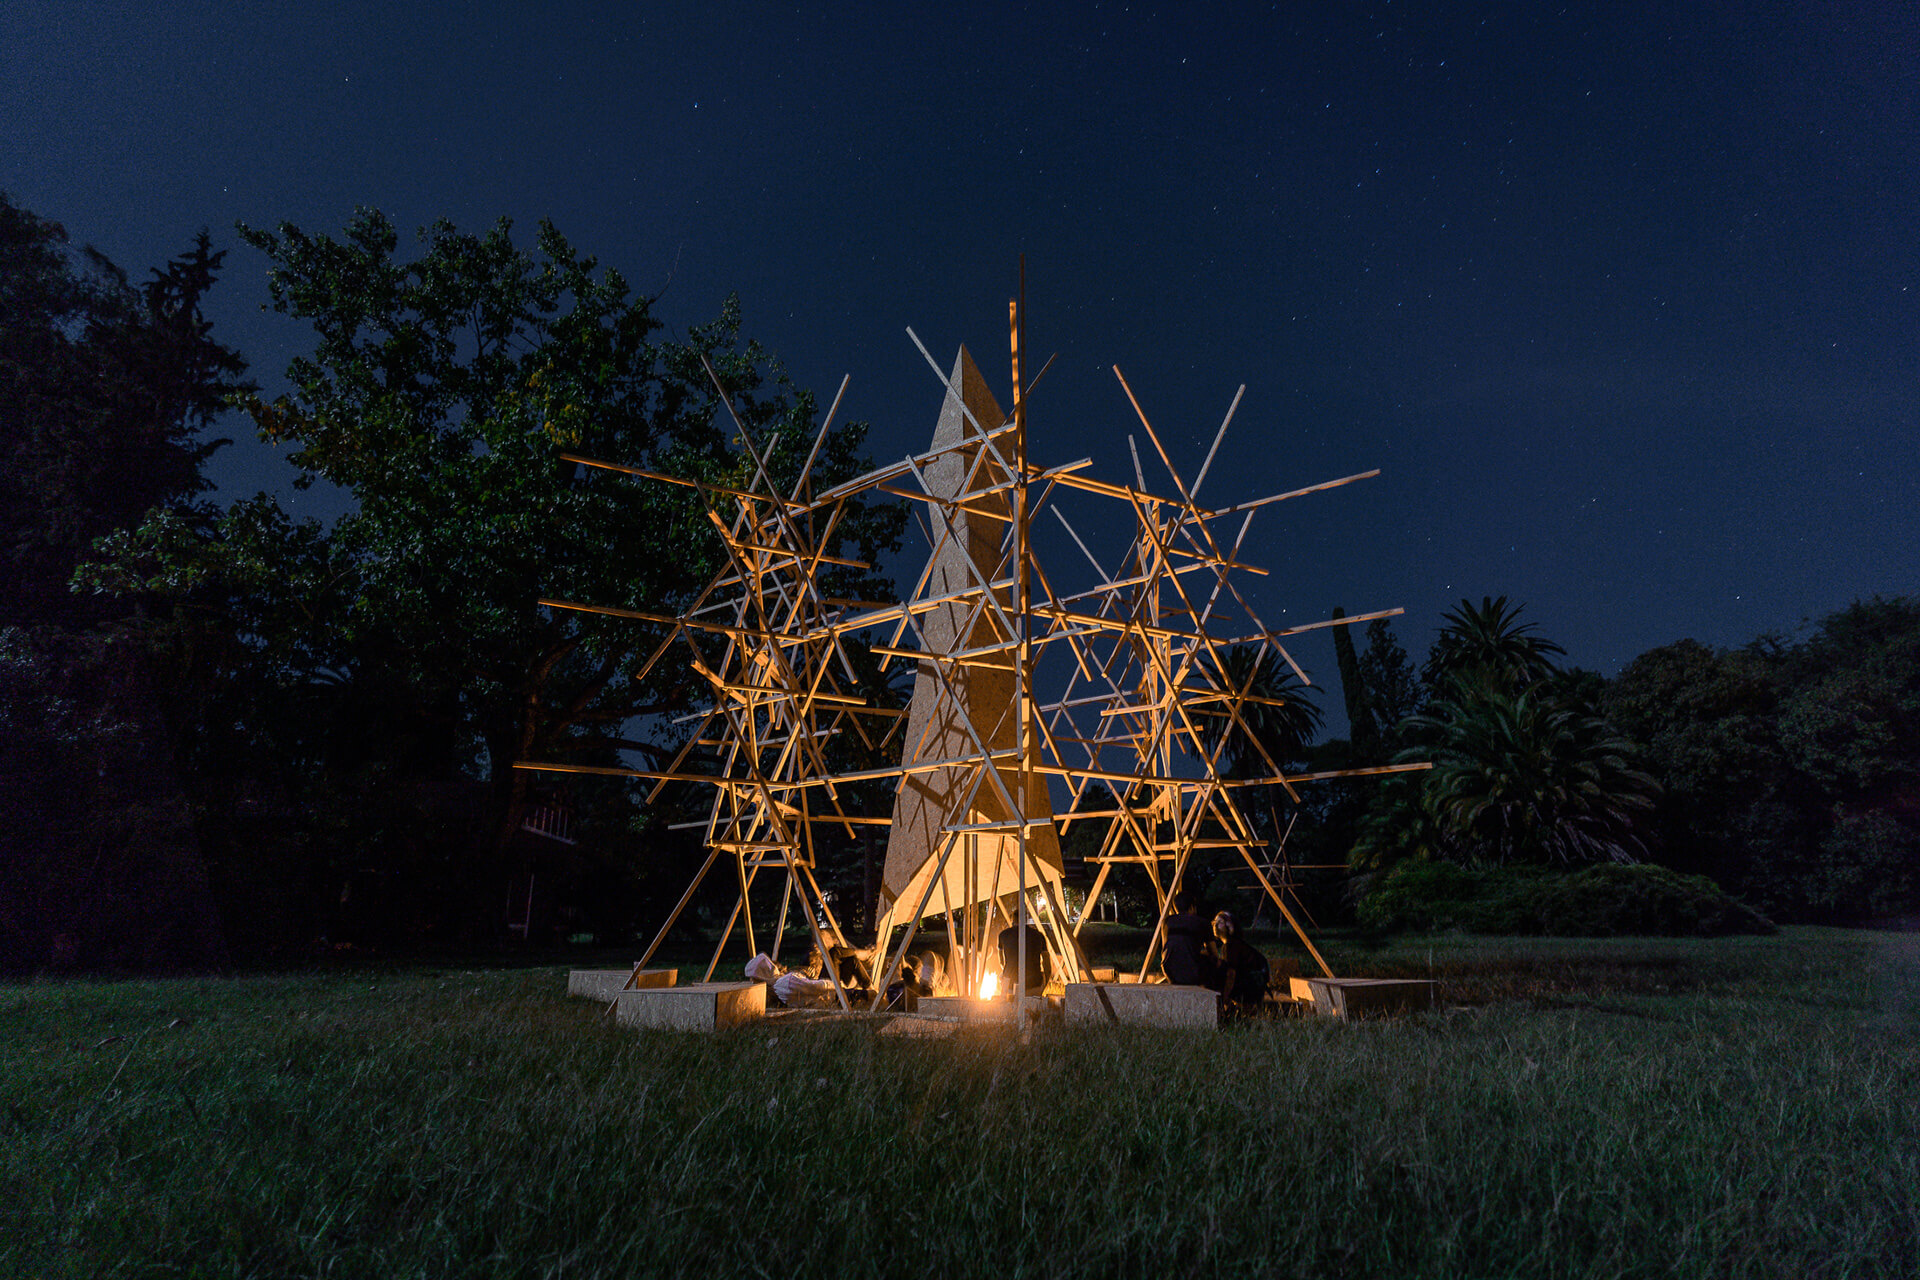 Project Chispa uses fire and architecture with a prism modular base to explore tension | Hello Wood Festival | Installations in Wood | STIRworld